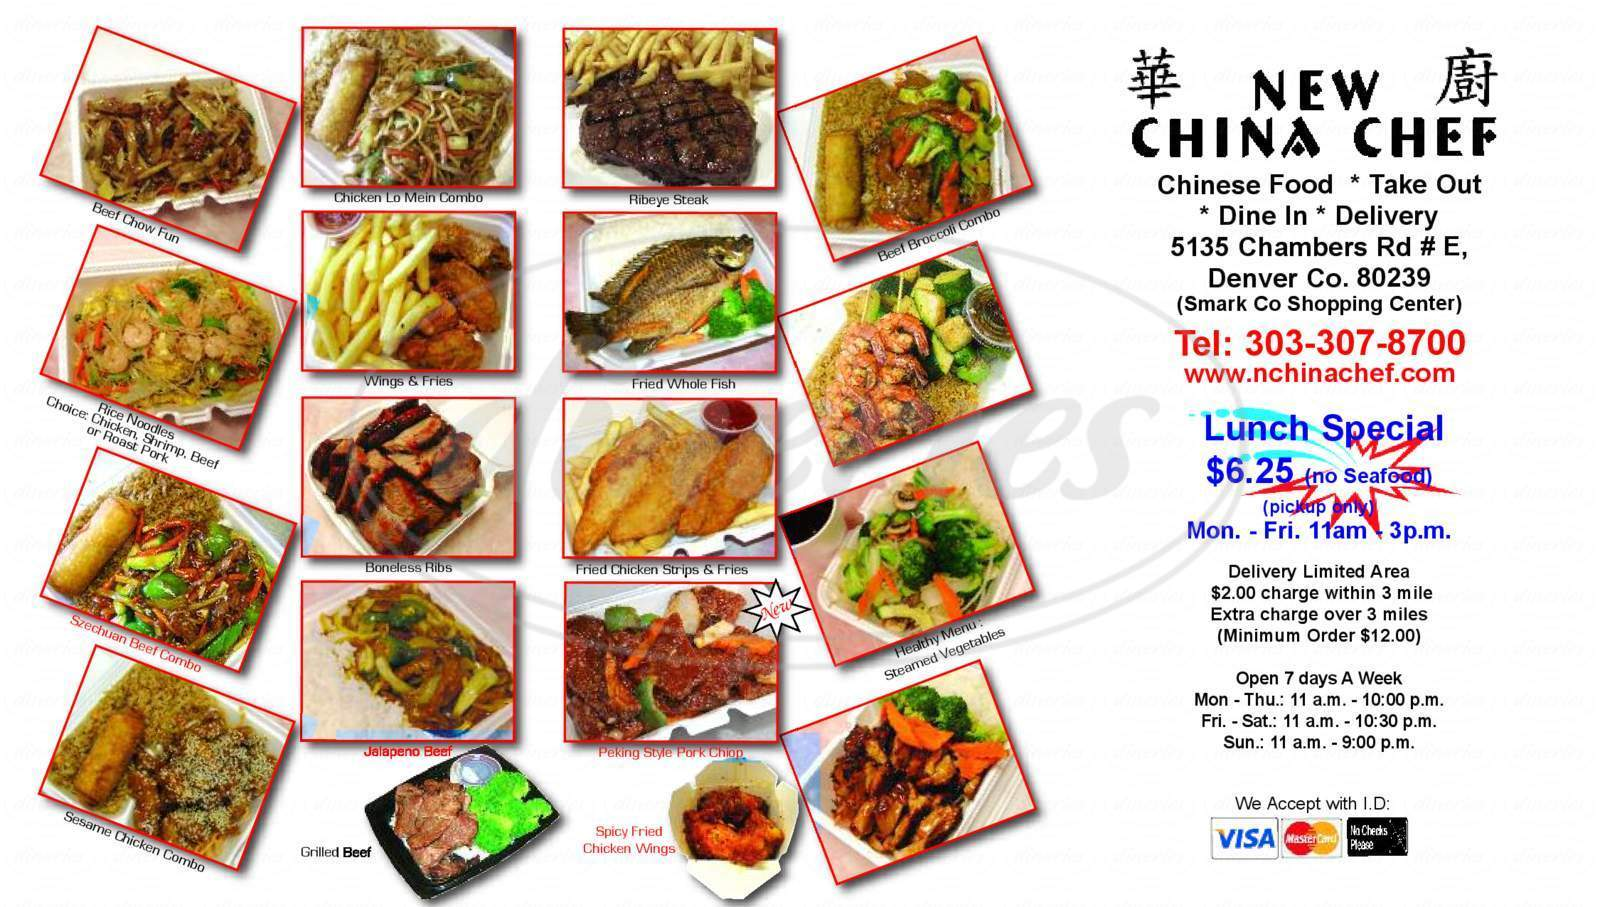 menu for New China Chef